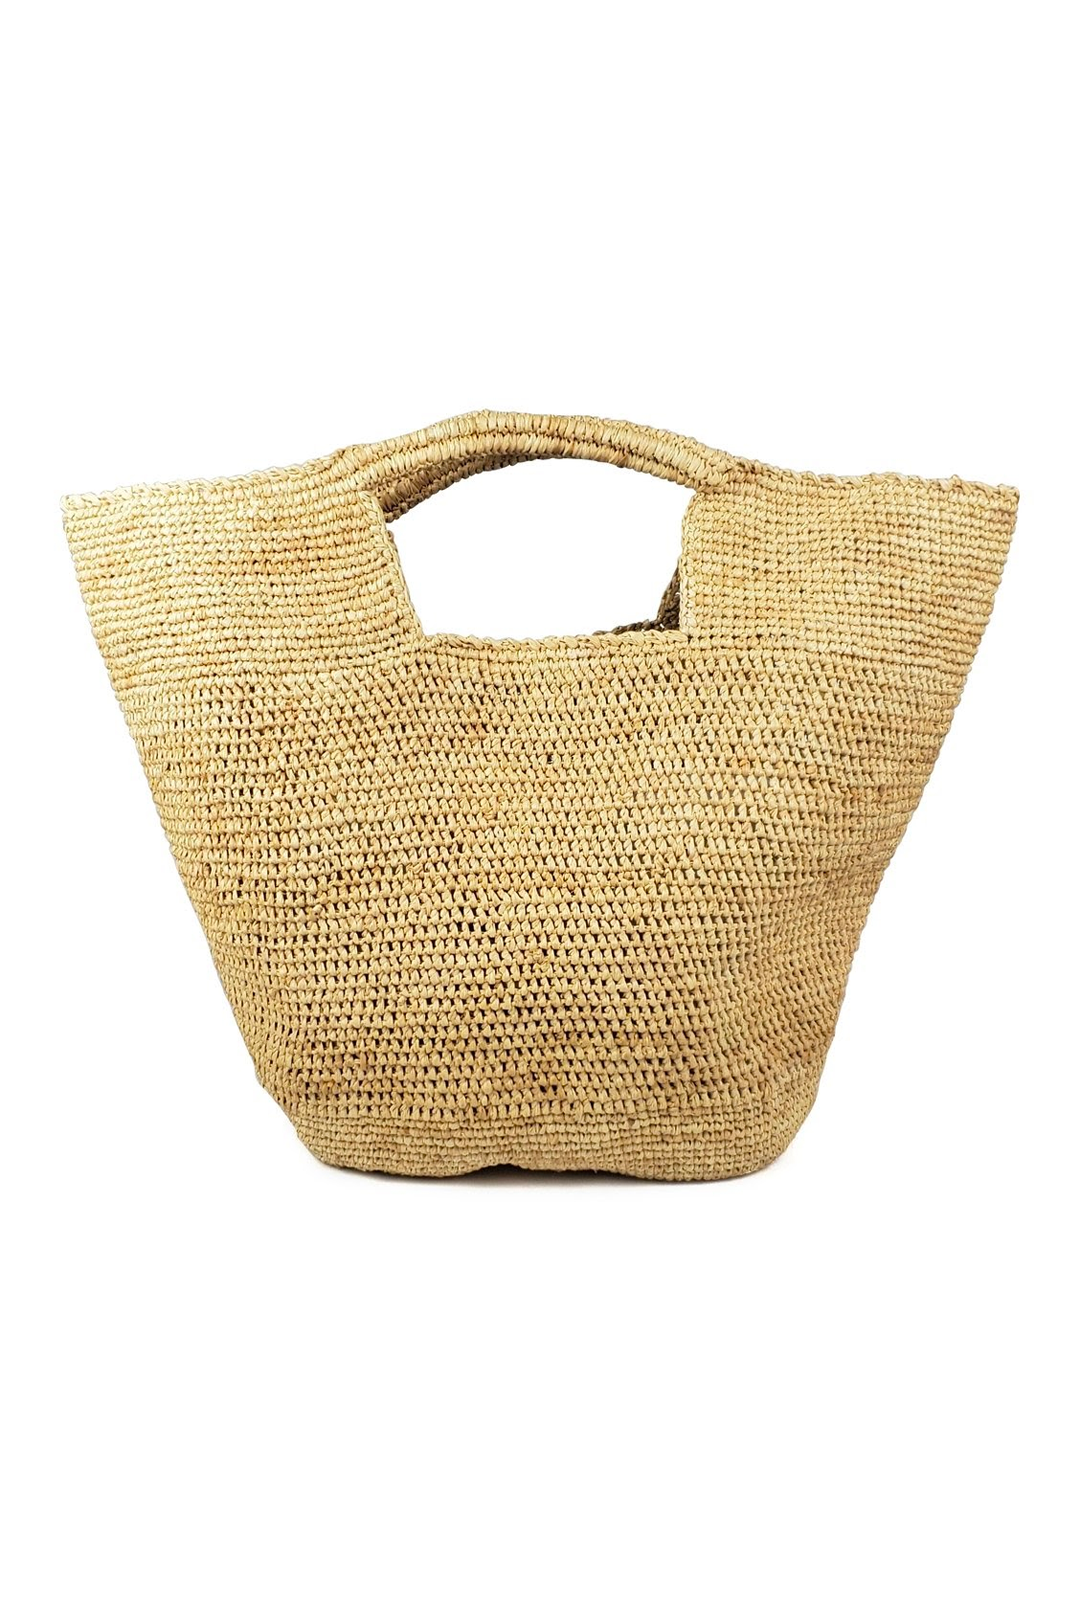 Club Carryall - Natural